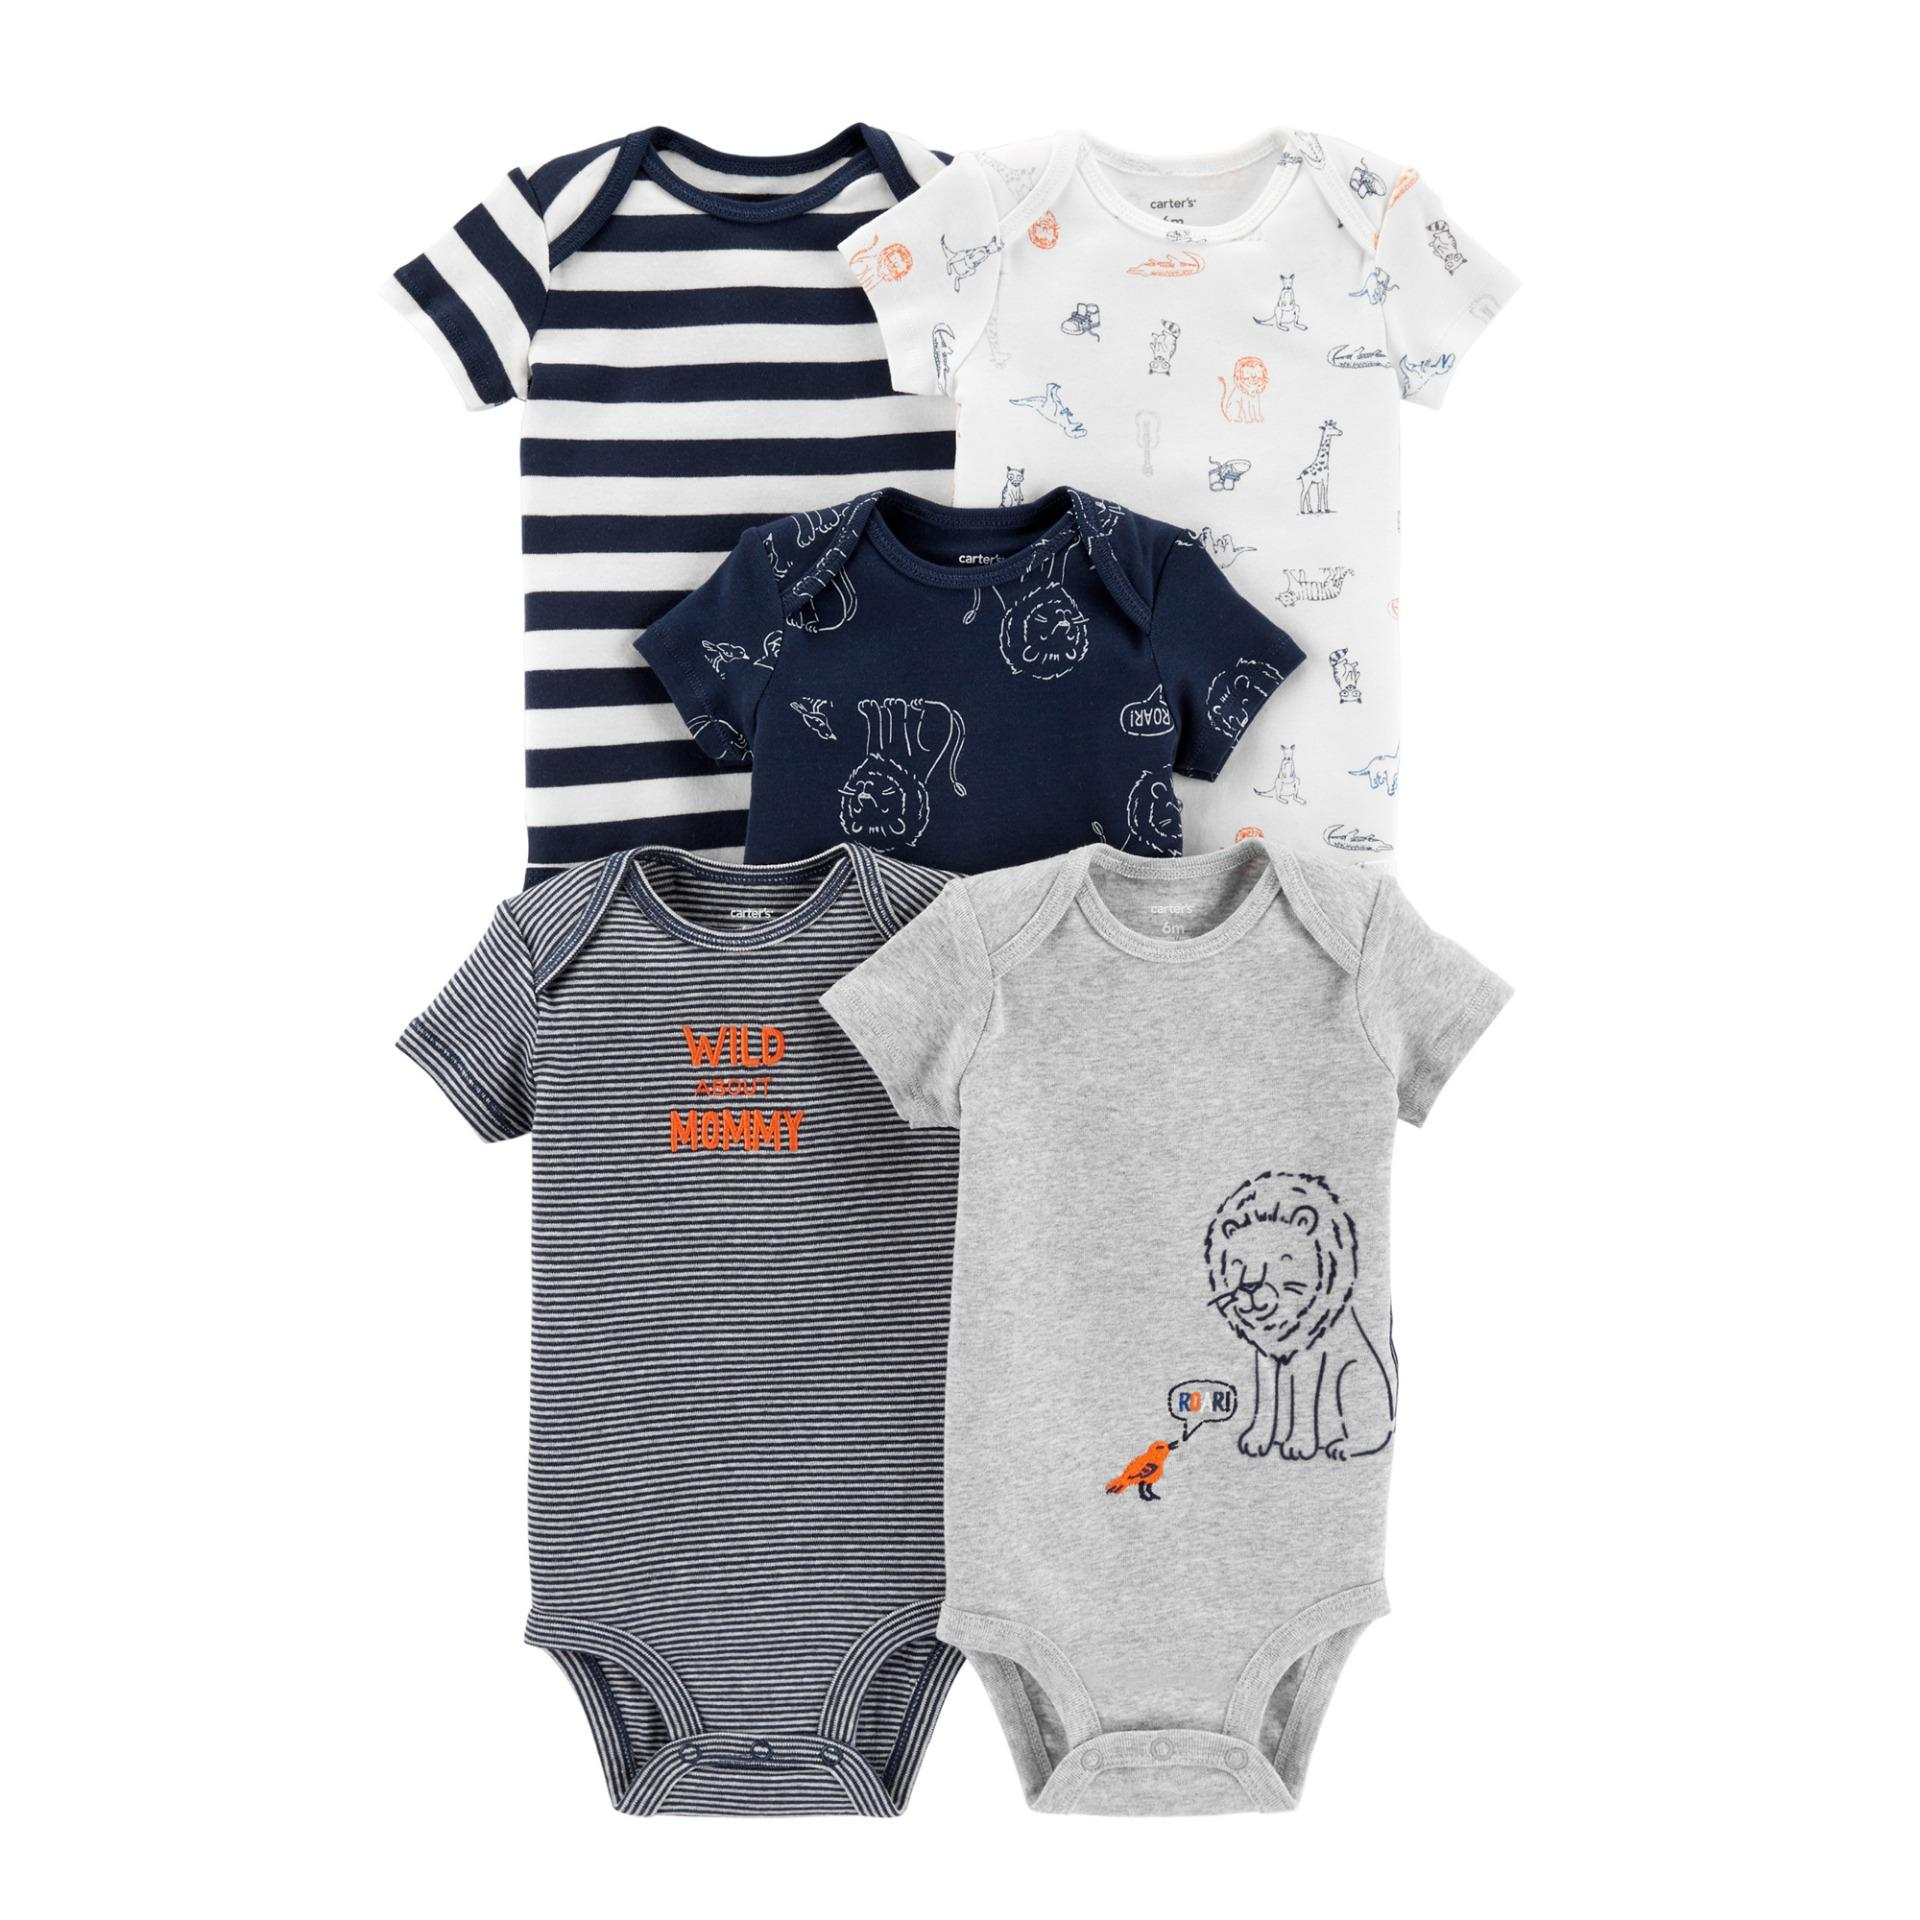 5a539b8a Carter's Philippines - Carter's Body Suits for Boys for sale ...